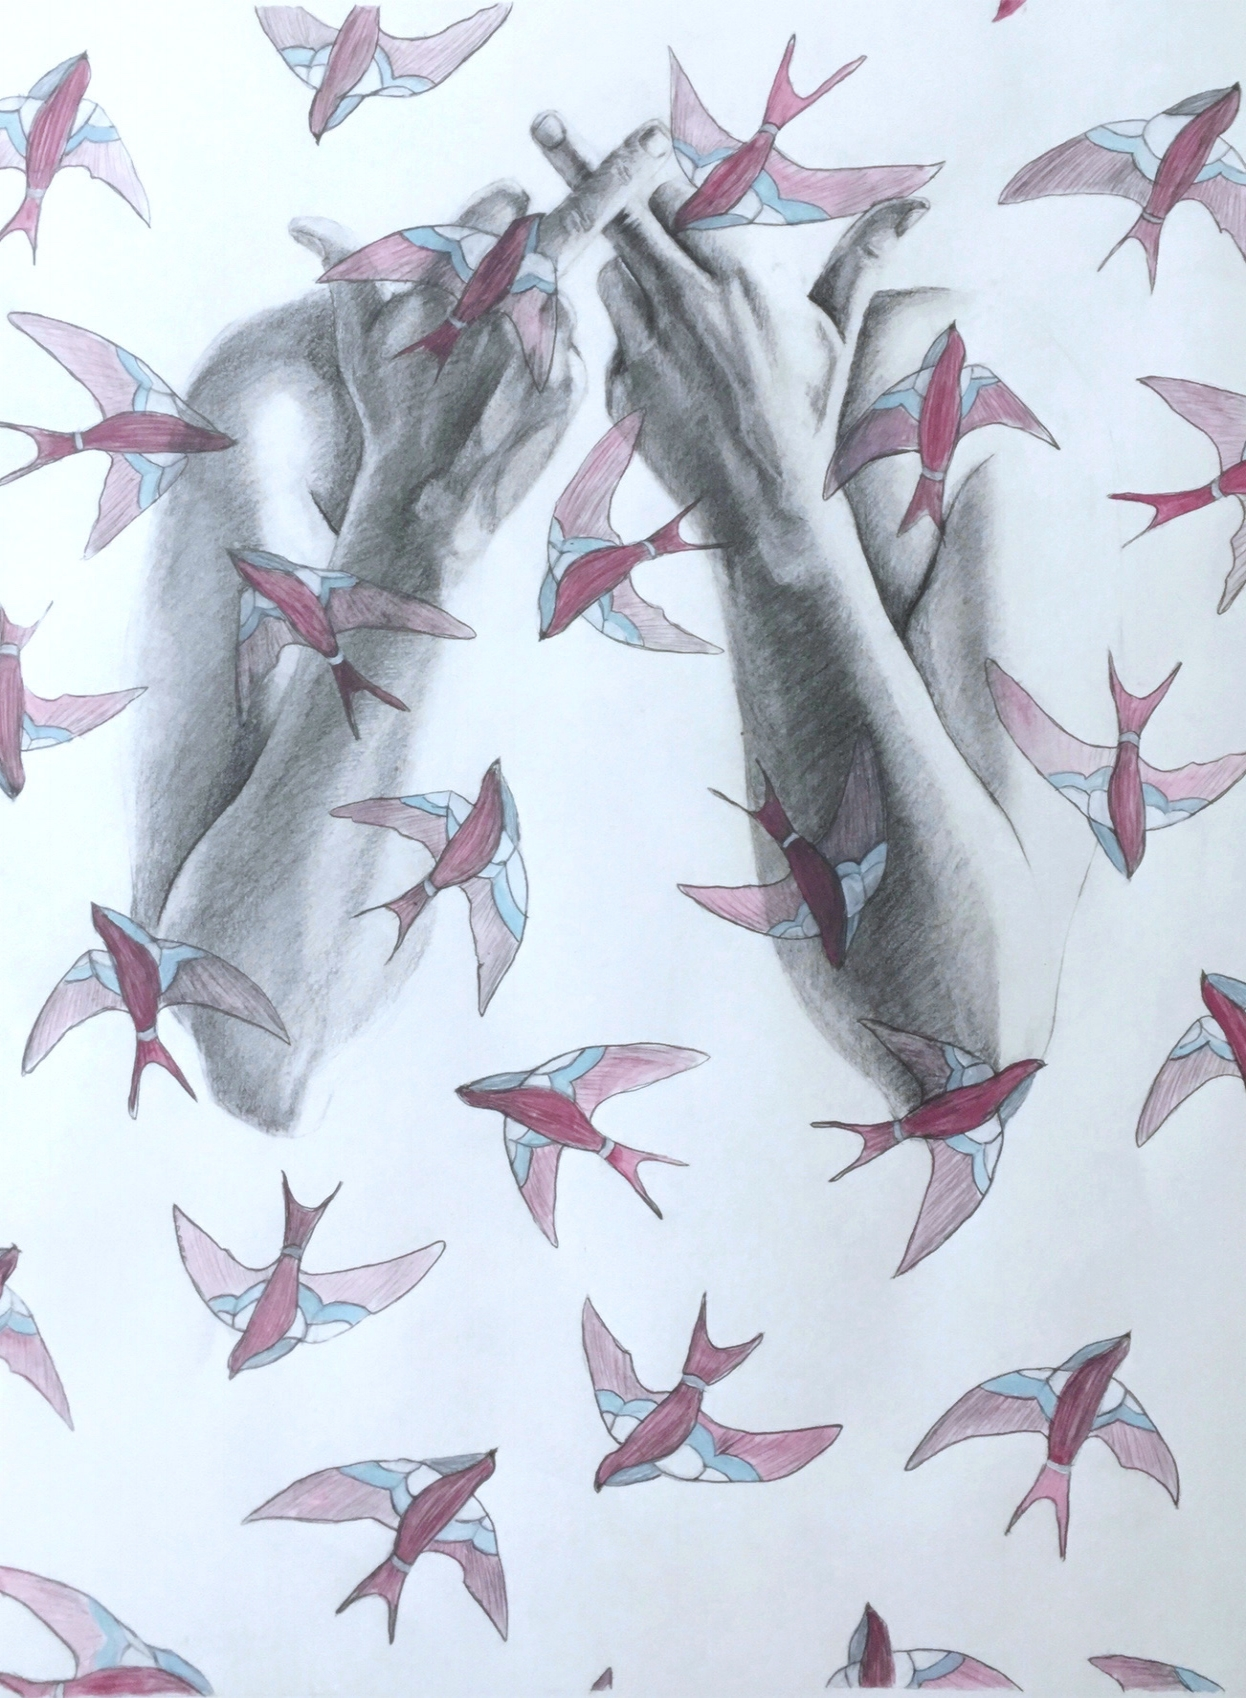 All The Pretty Birds Are Boy Birds Acrylic, Graphite on paper, 2017